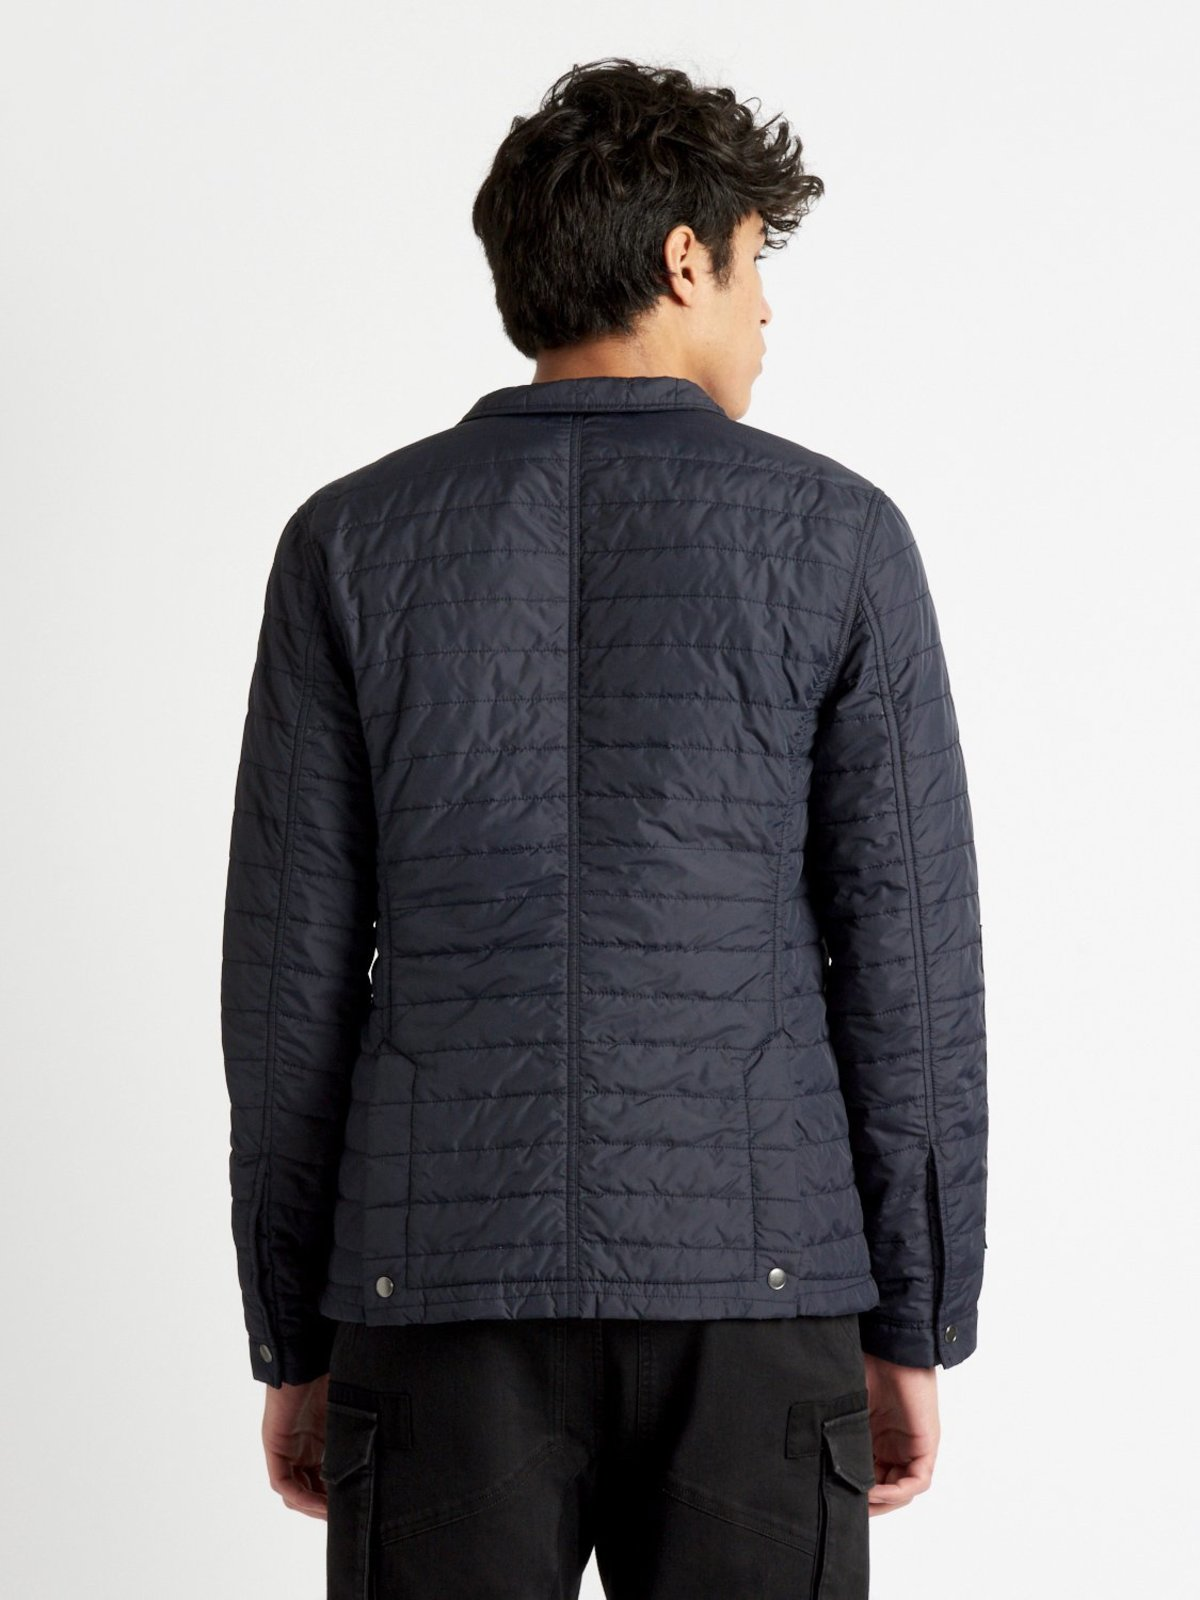 vp v htm dane for use blazer code quilted off east quilt apolis